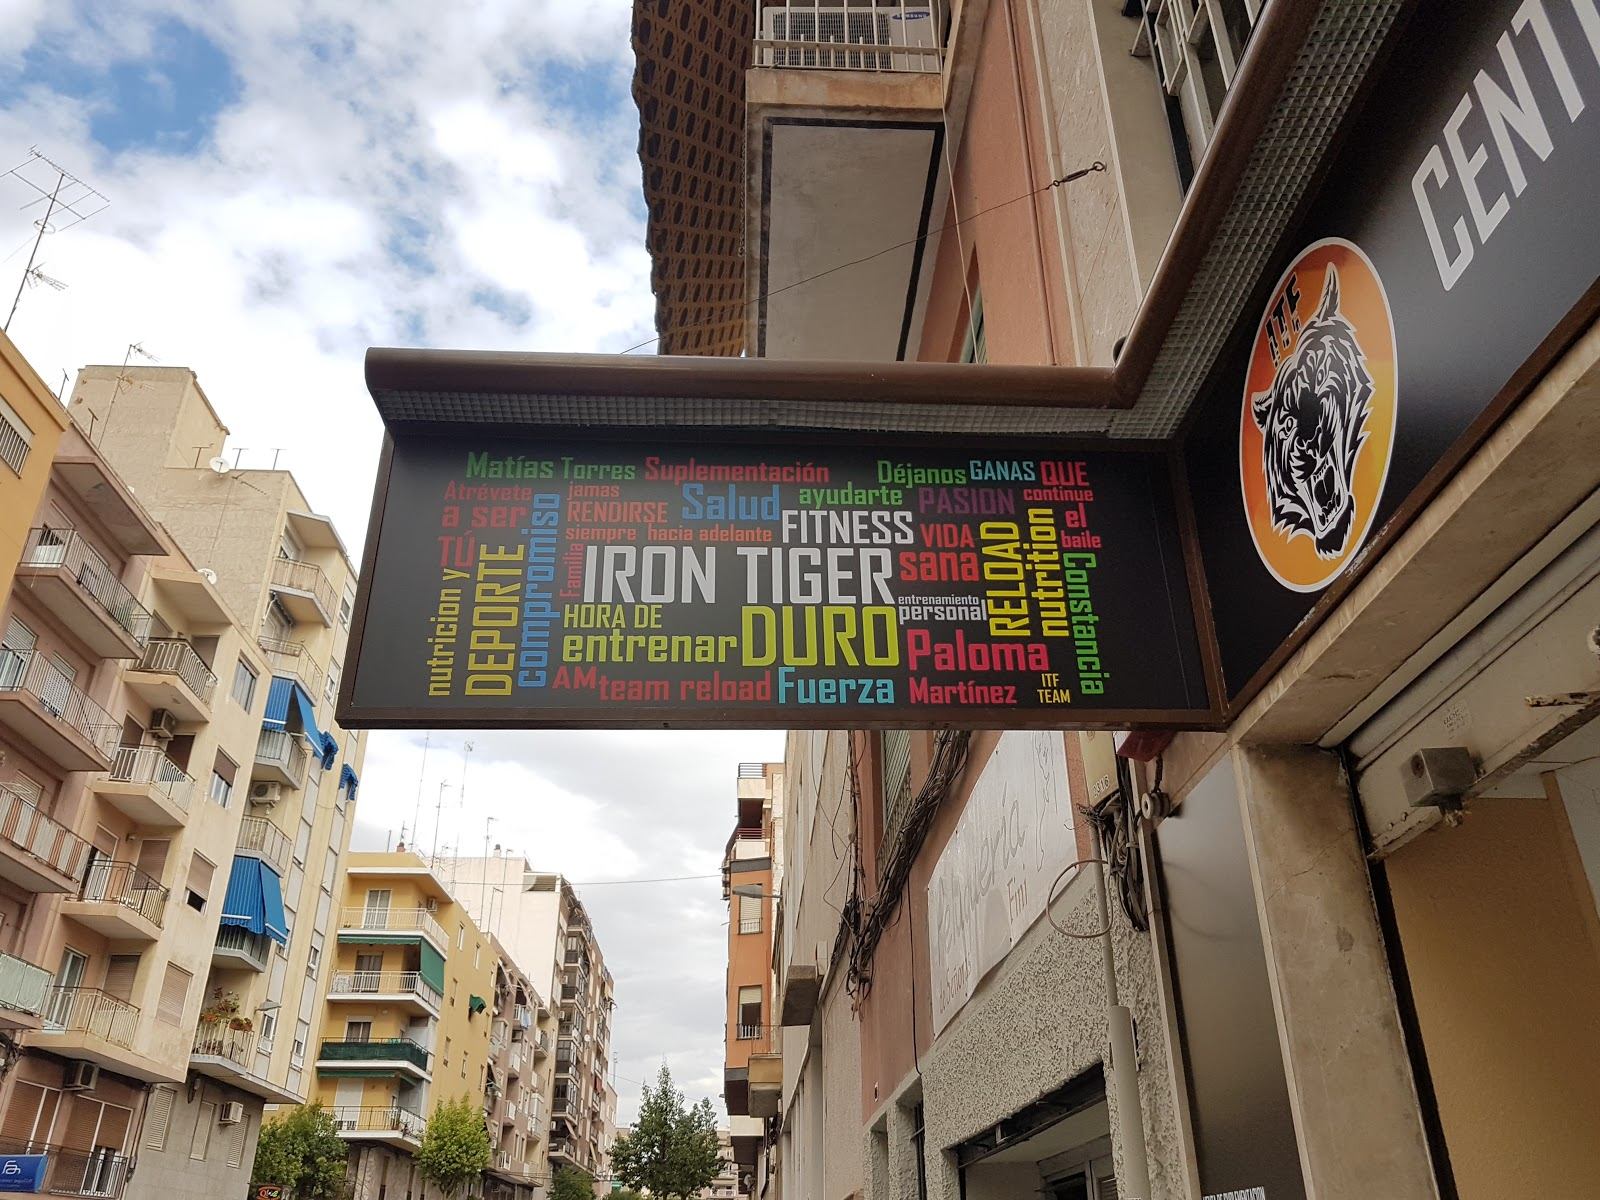 Iron Tiger fitness - photo